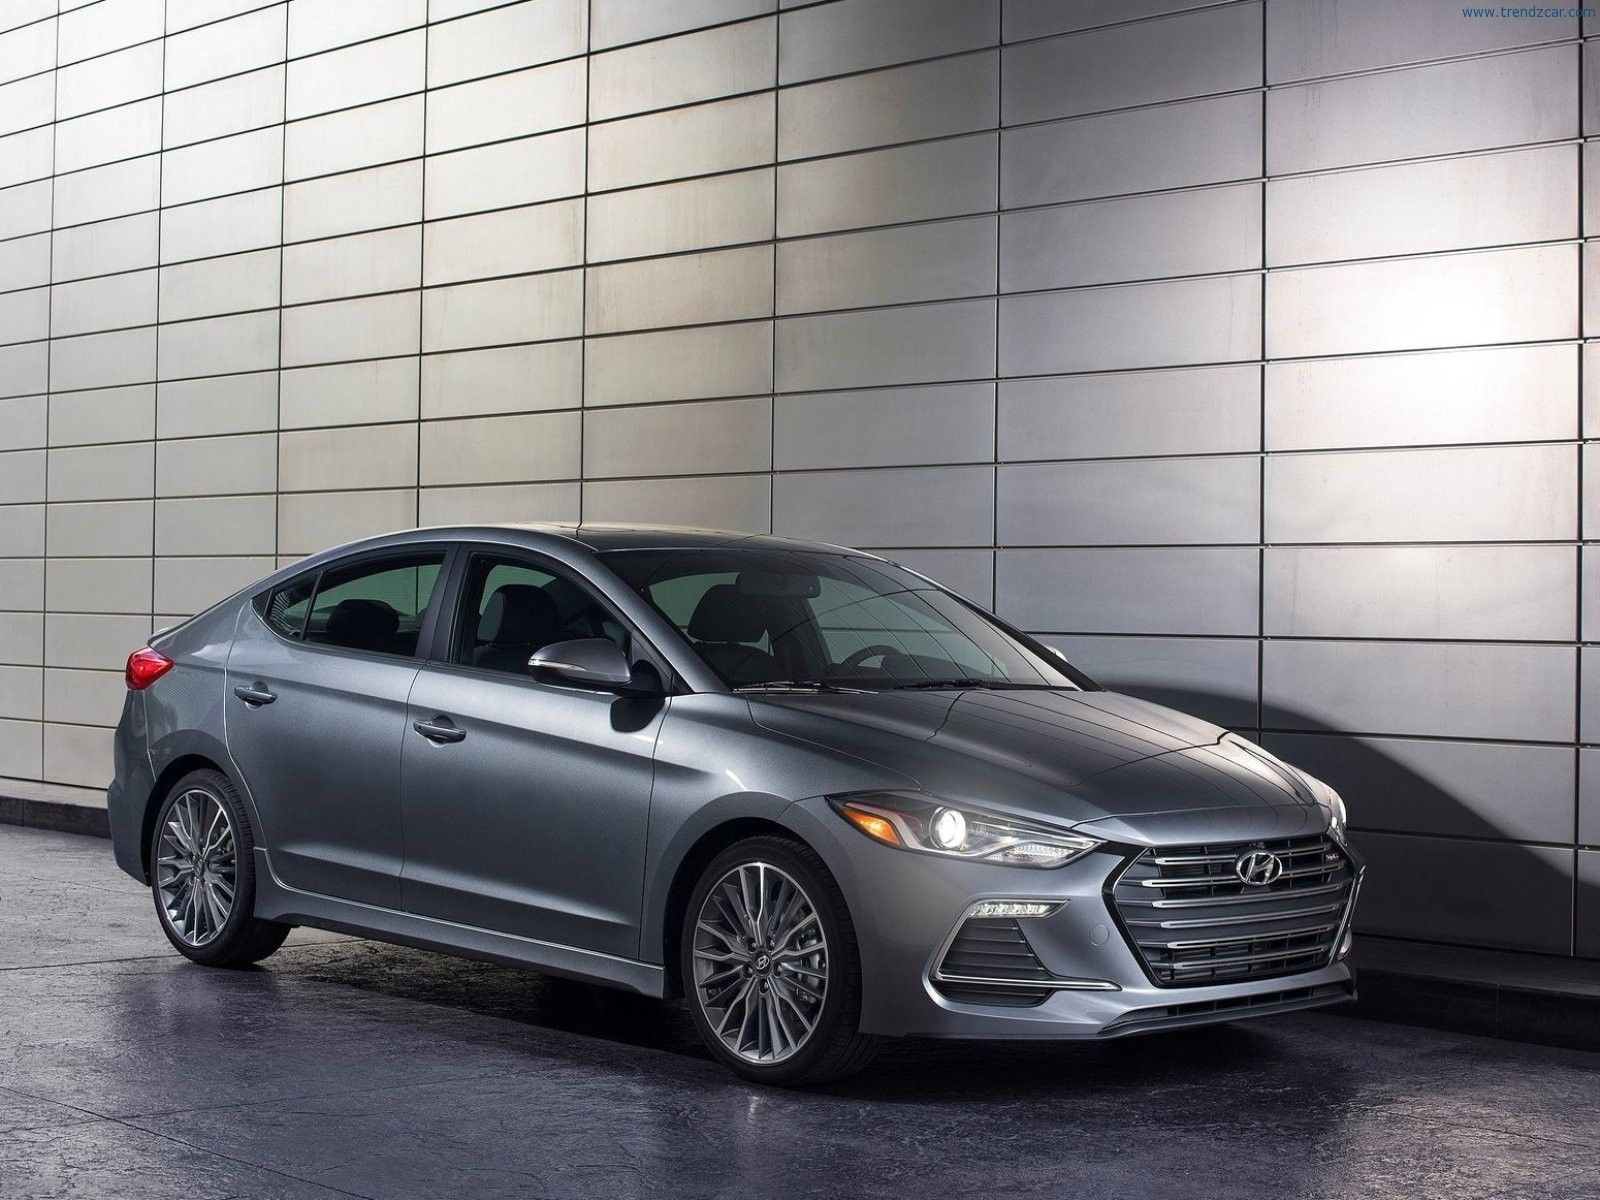 Exceptionnel The New 2017 Hyundai Elantra Sport Understands That The Sports Moniker  Should Deliver On Its Promise, And That Is Reflected In A Number Of Ways  Beyond The